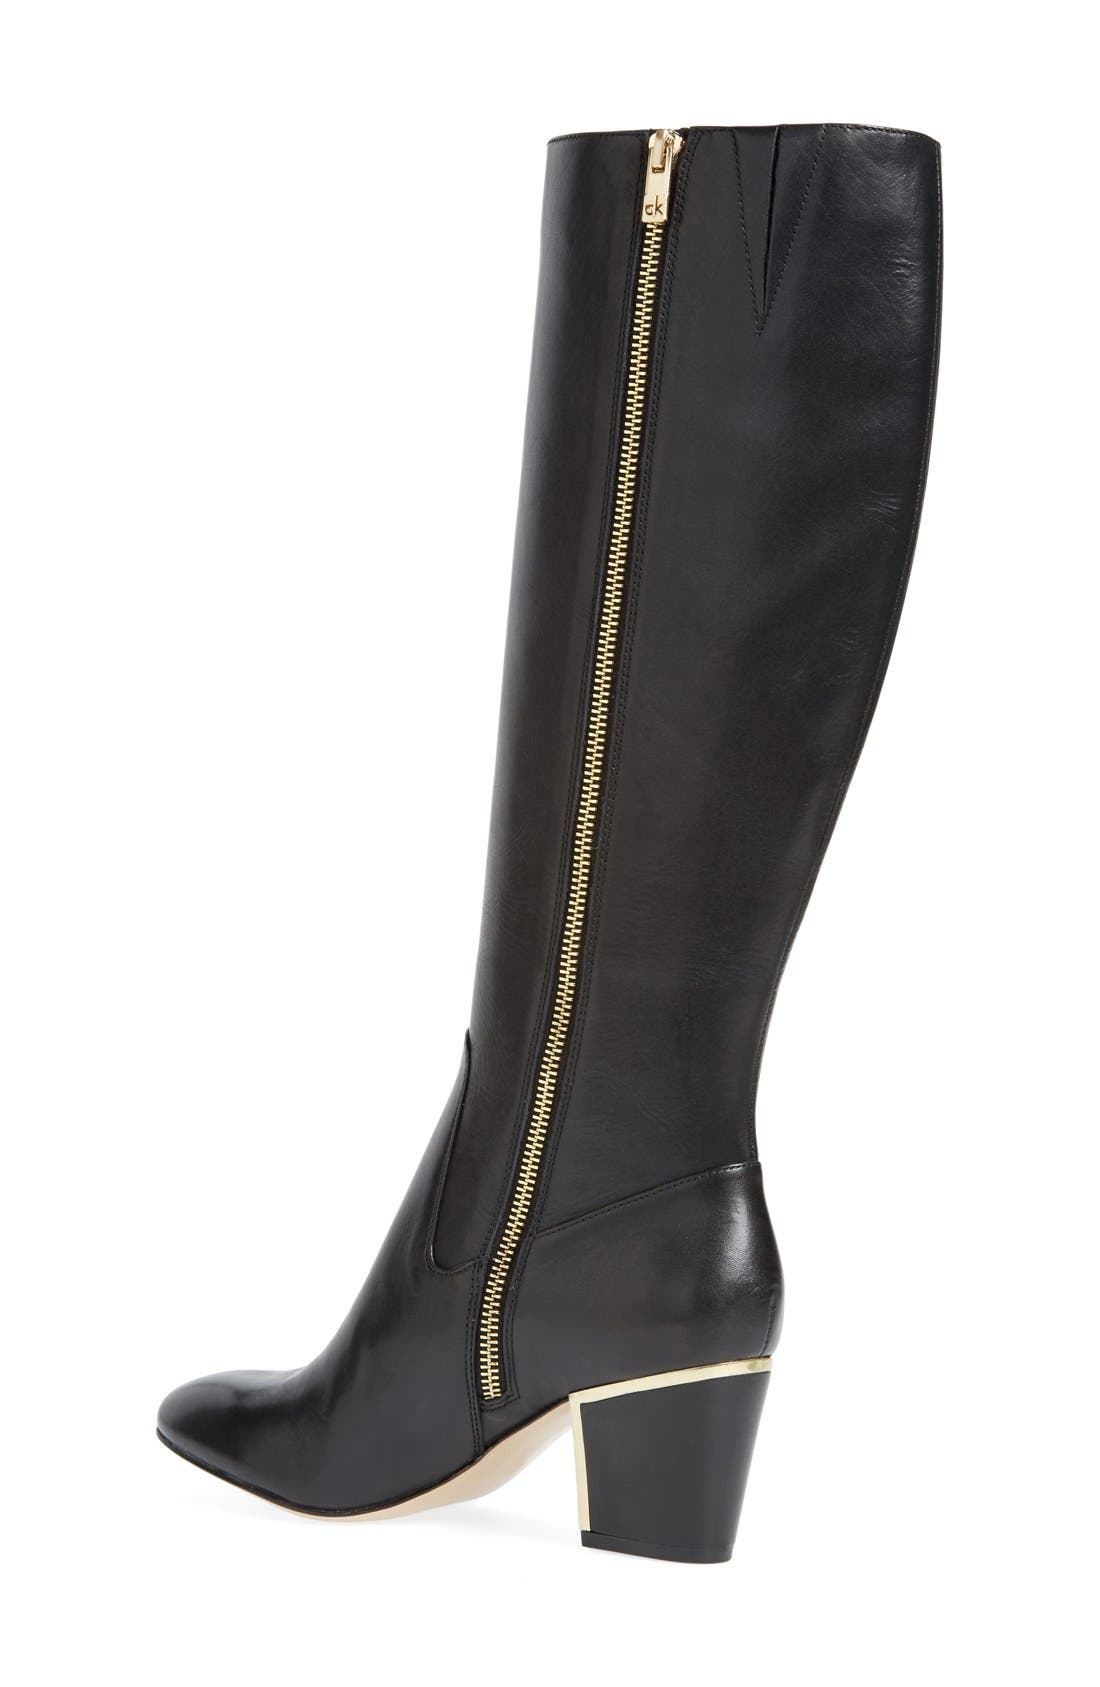 'Keana' Knee High Boot,                             Alternate thumbnail 2, color,                             001